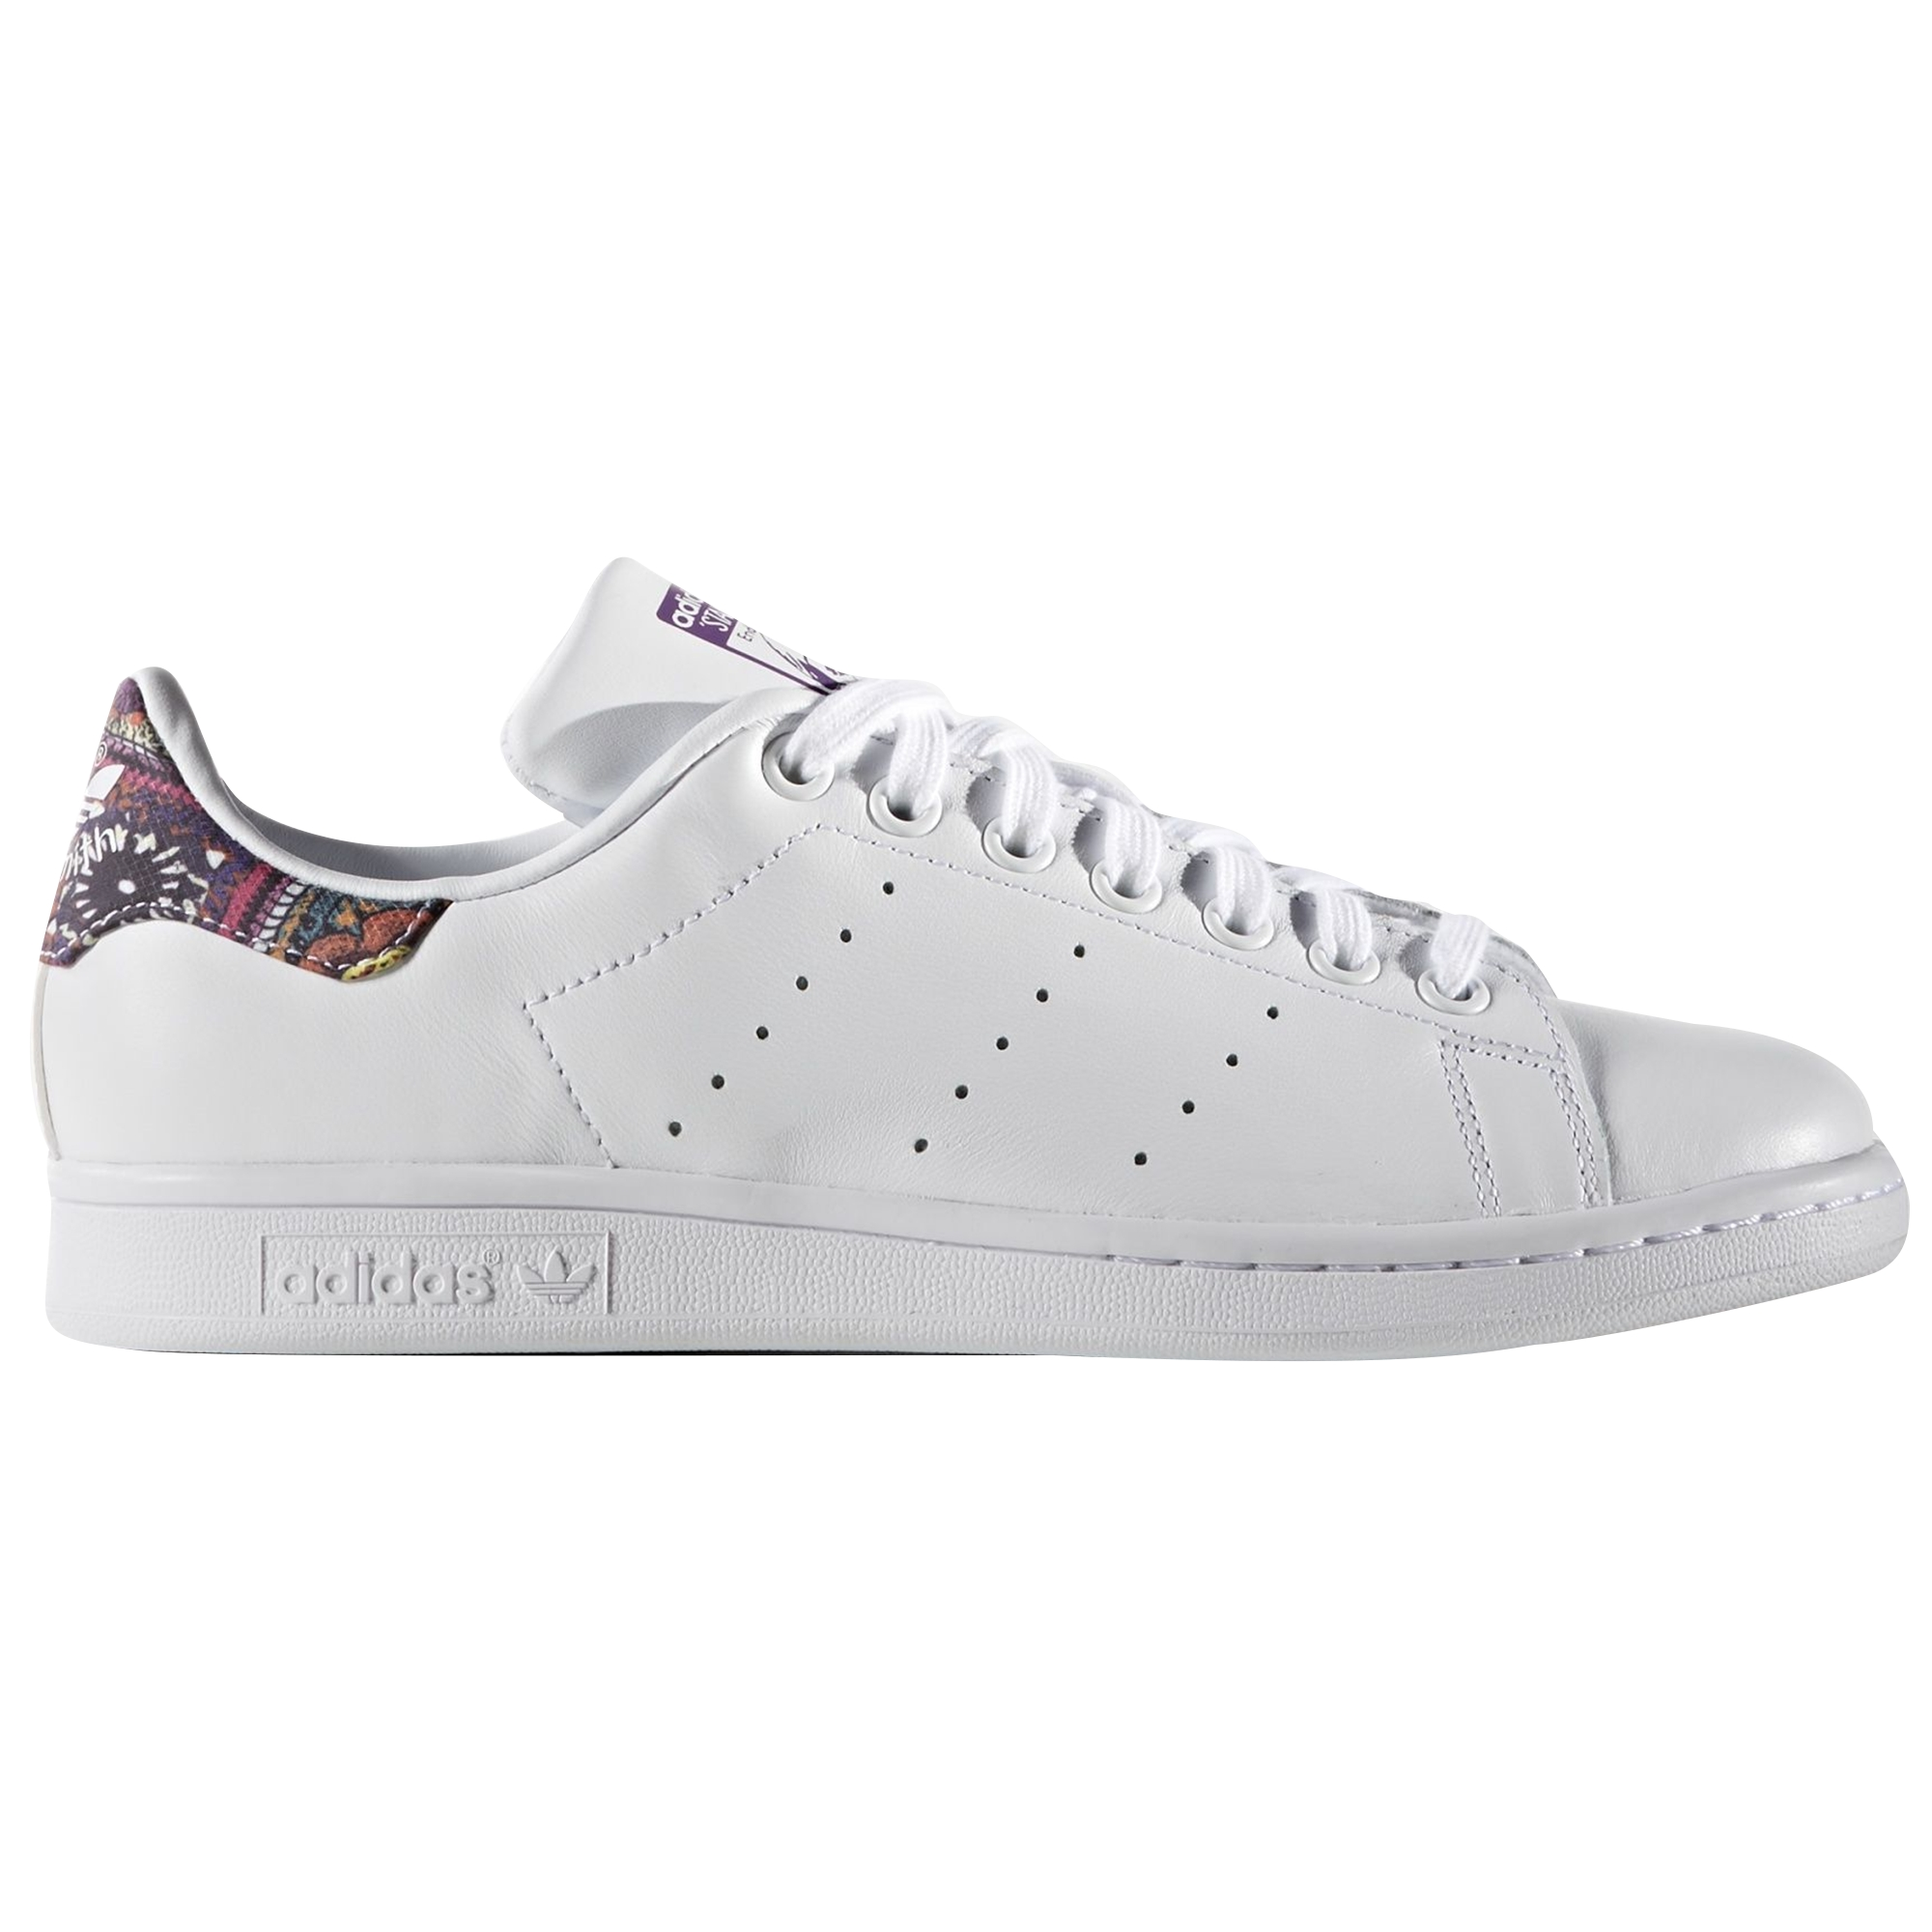 Adidas stan smith graphic kad n spor ayakkab s76668 for Adidas nuove stan smith